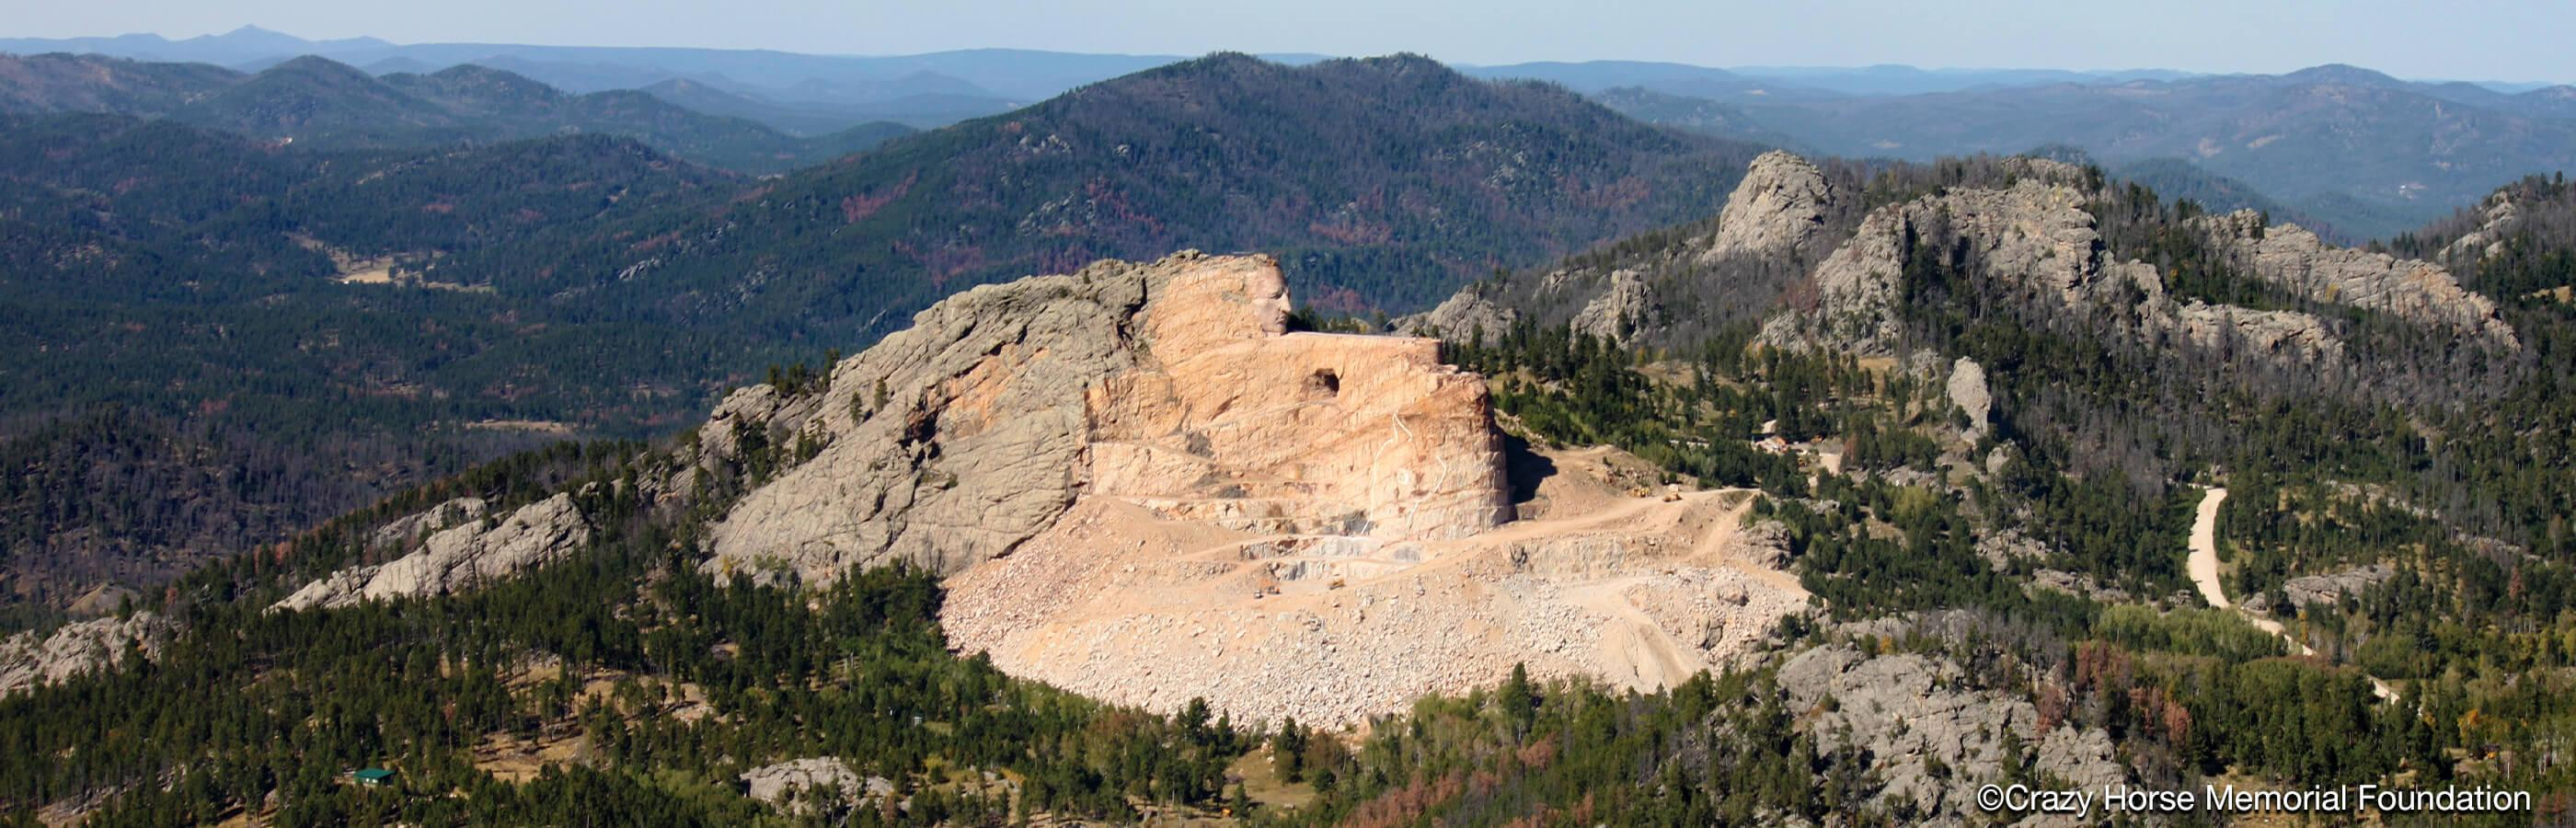 Aerial Shot of Crazy Horse Memorial